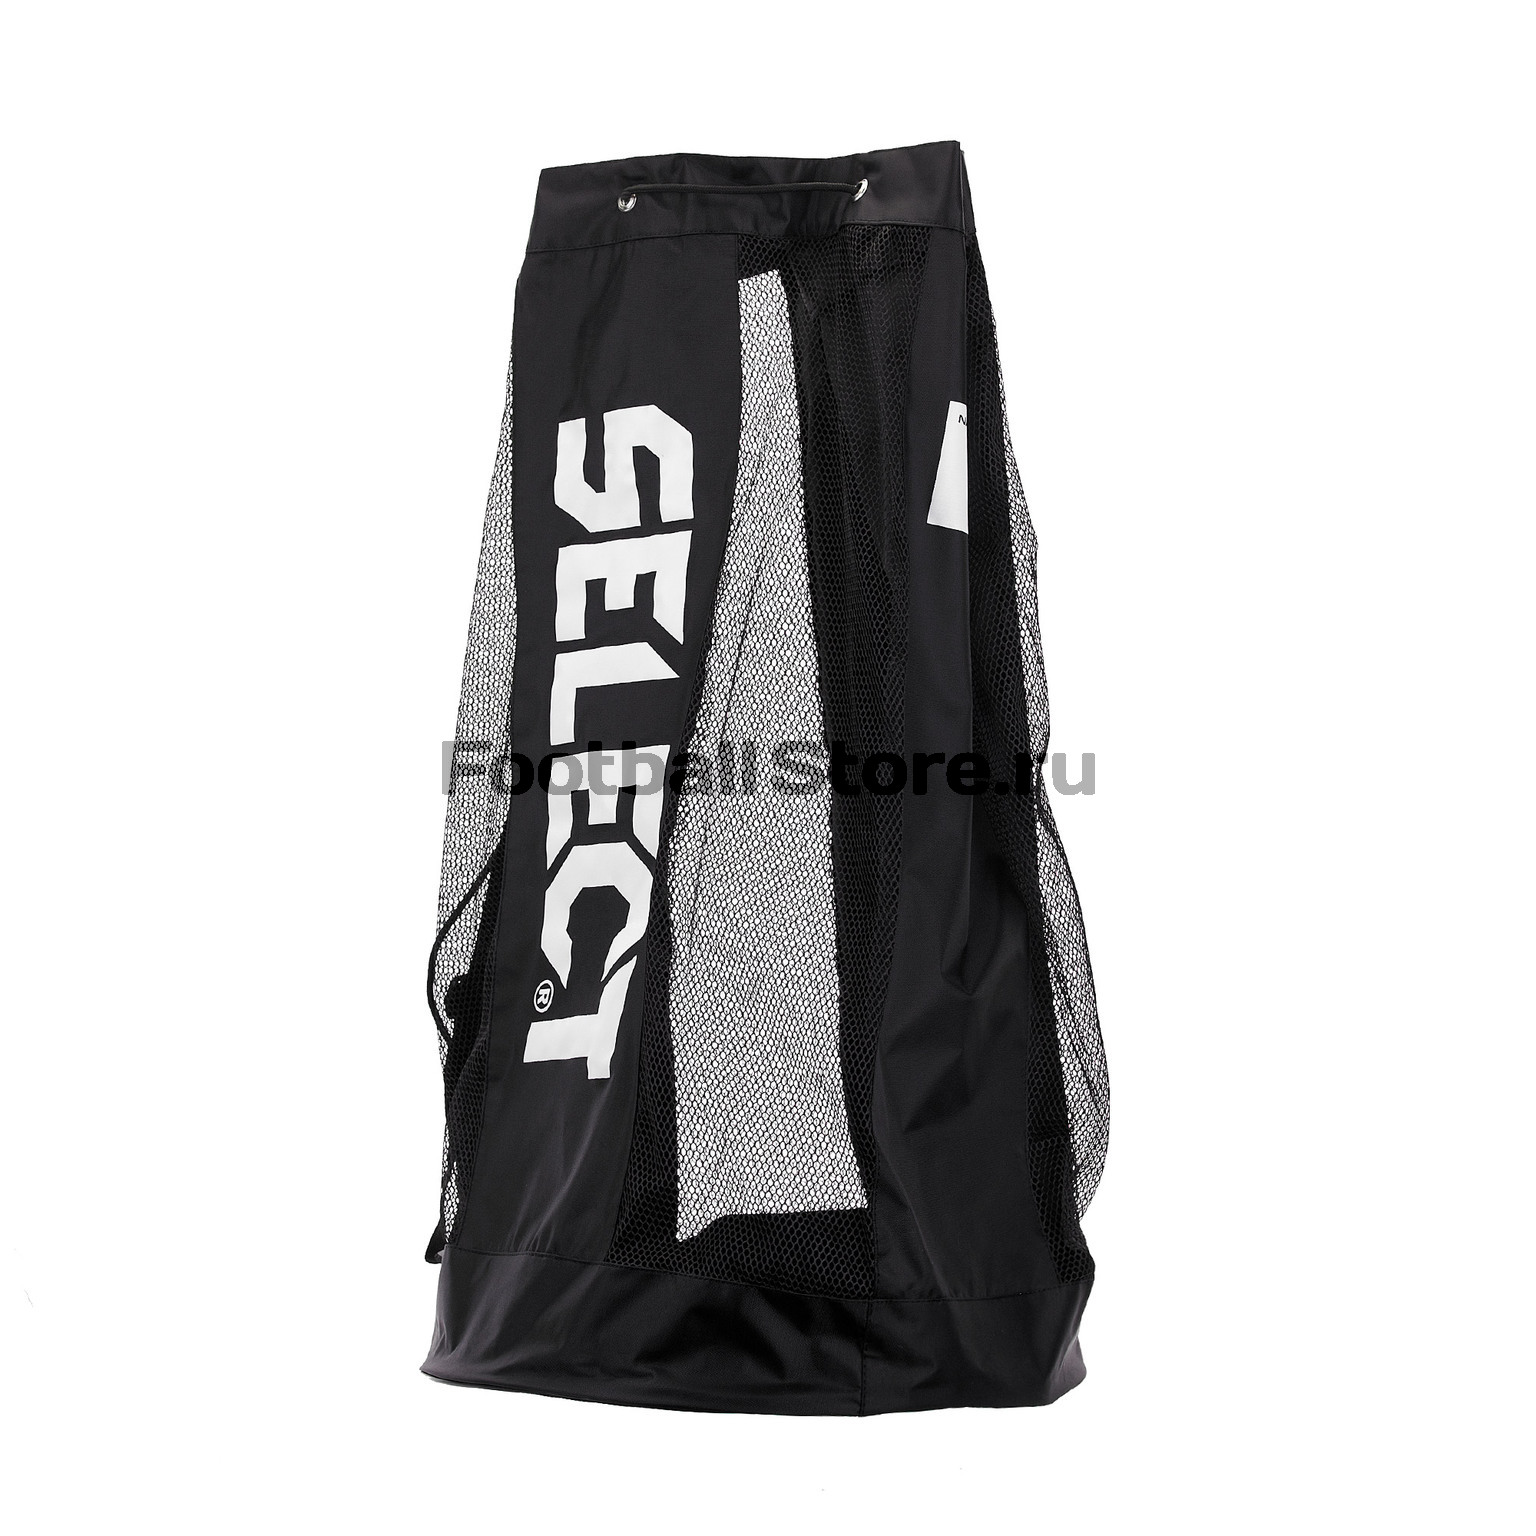 Сумка для мячей Select Football Bag 805016